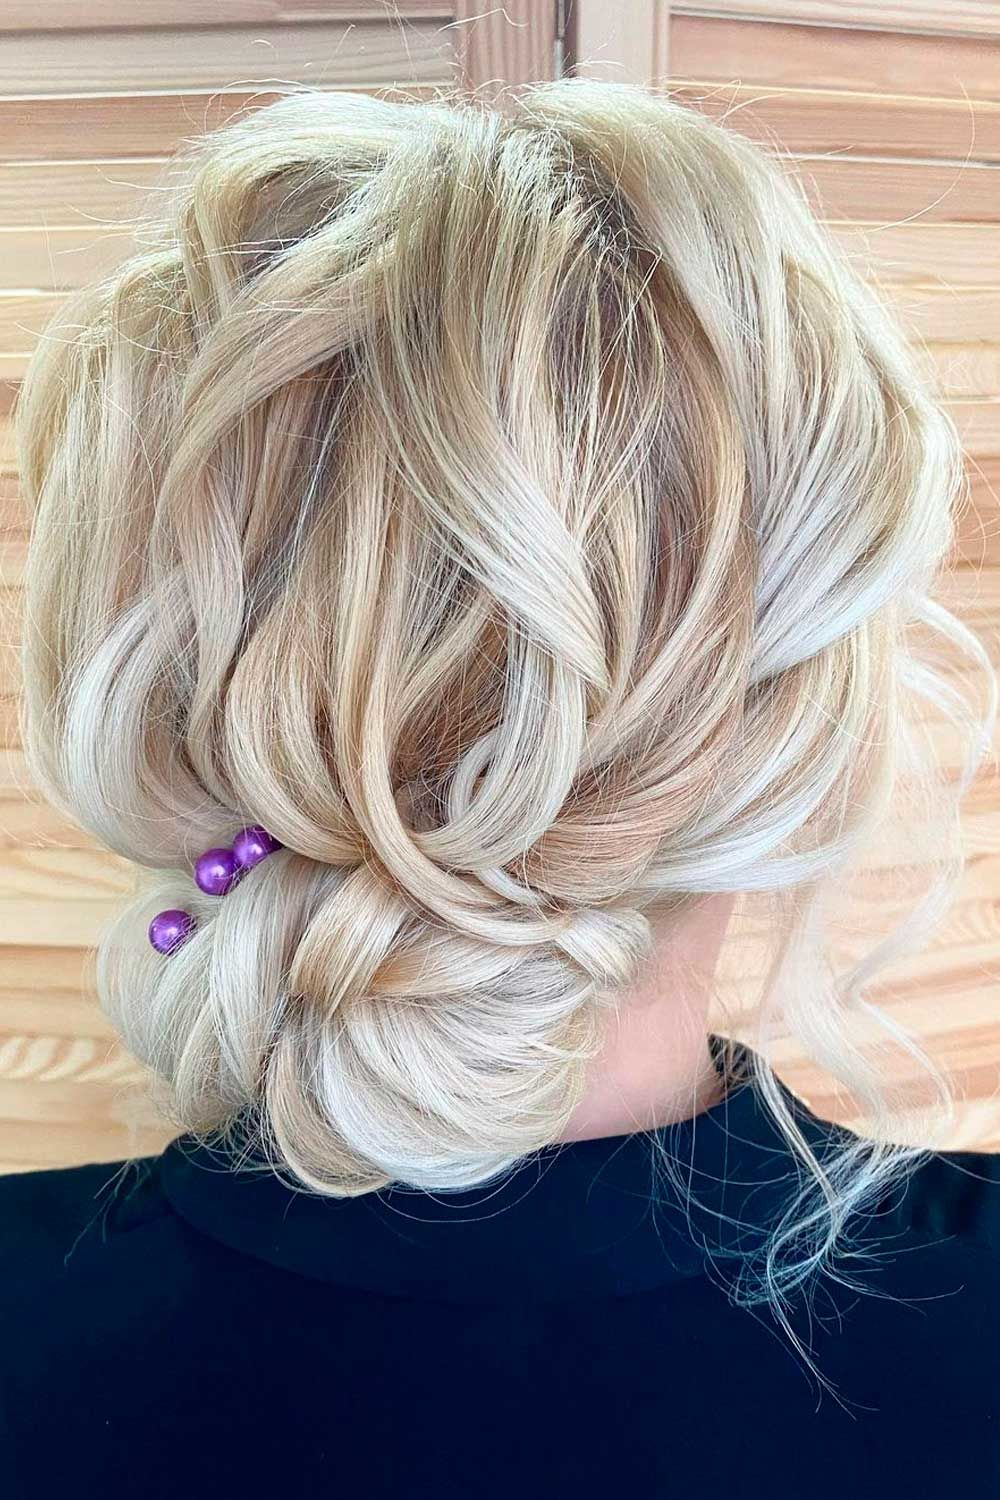 Updo Hairstyles With Accessories for Party